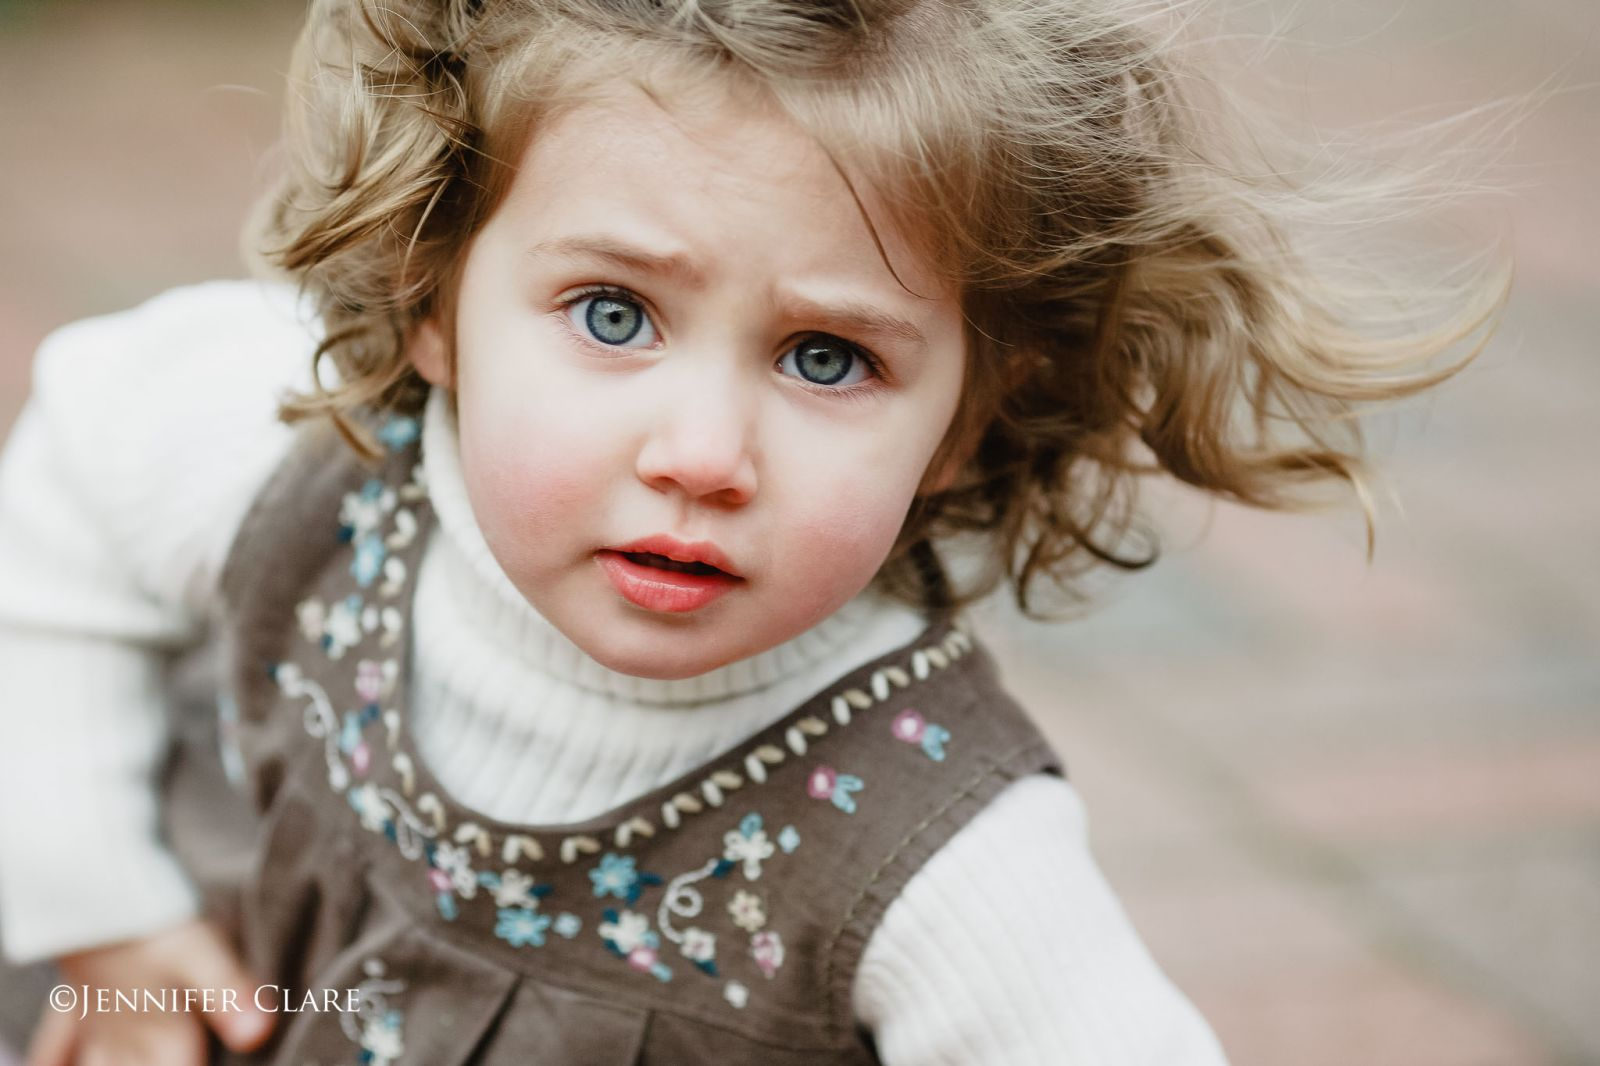 a colour image of a small girl with a quizzical expression.